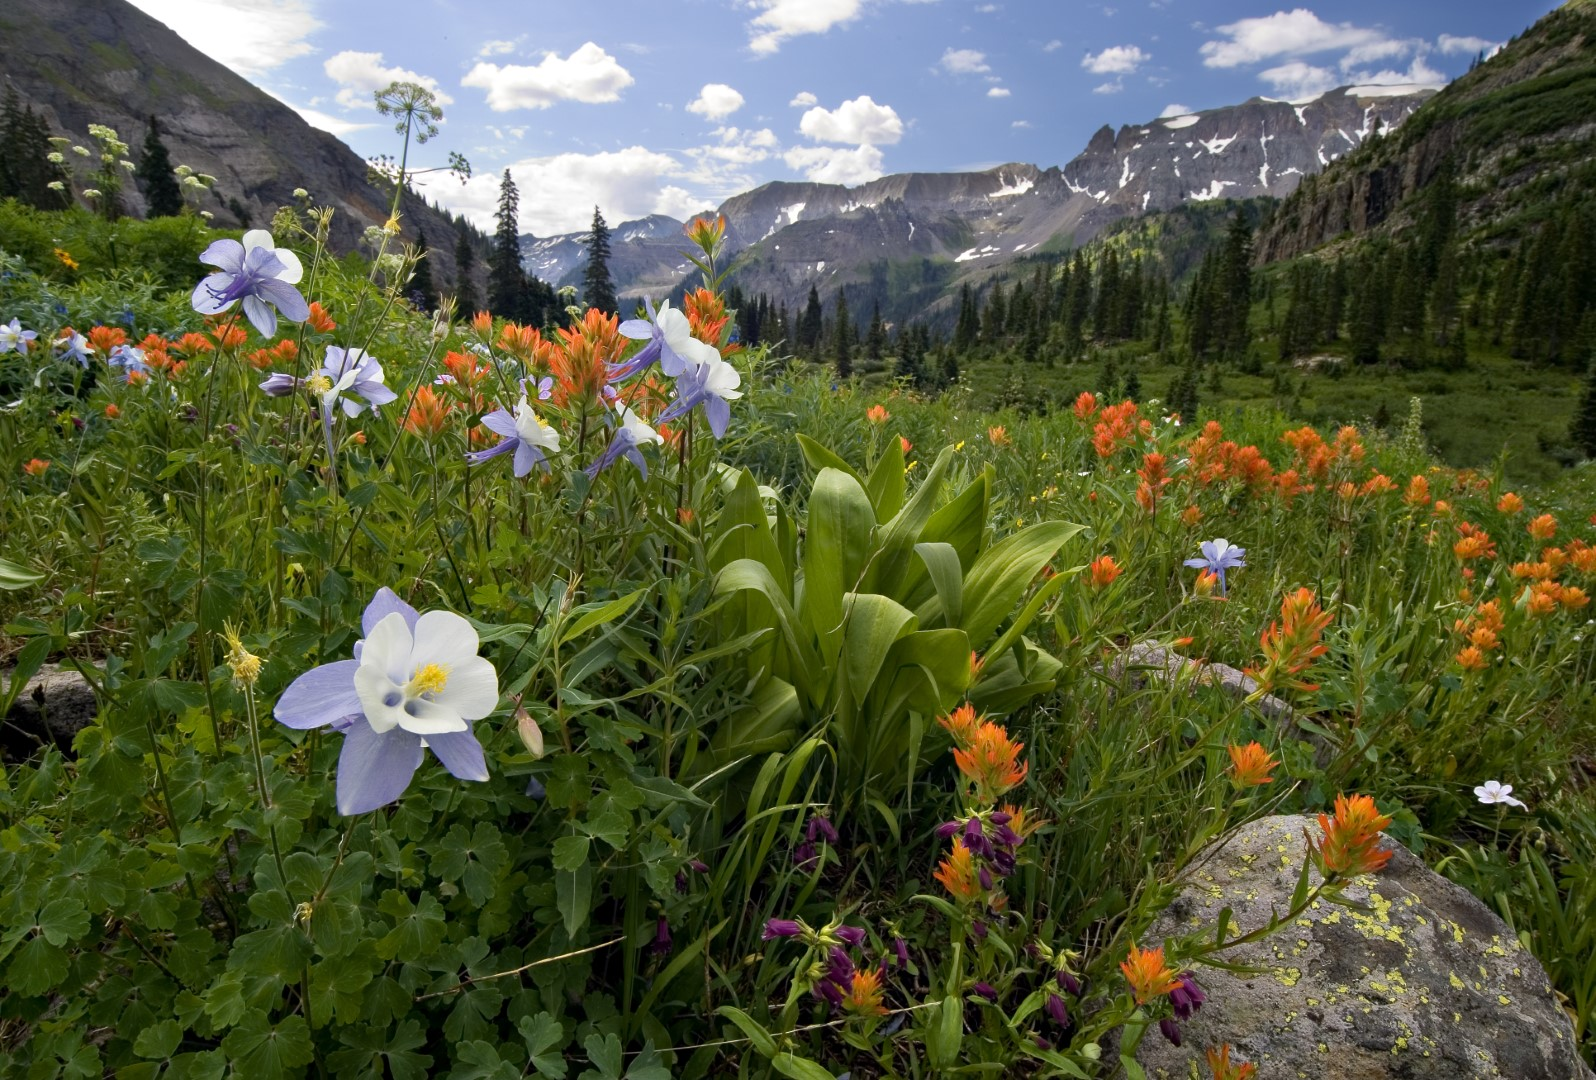 wp-content/uploads/itineraries/USA/CoMtn/ouray-flowers.jpg